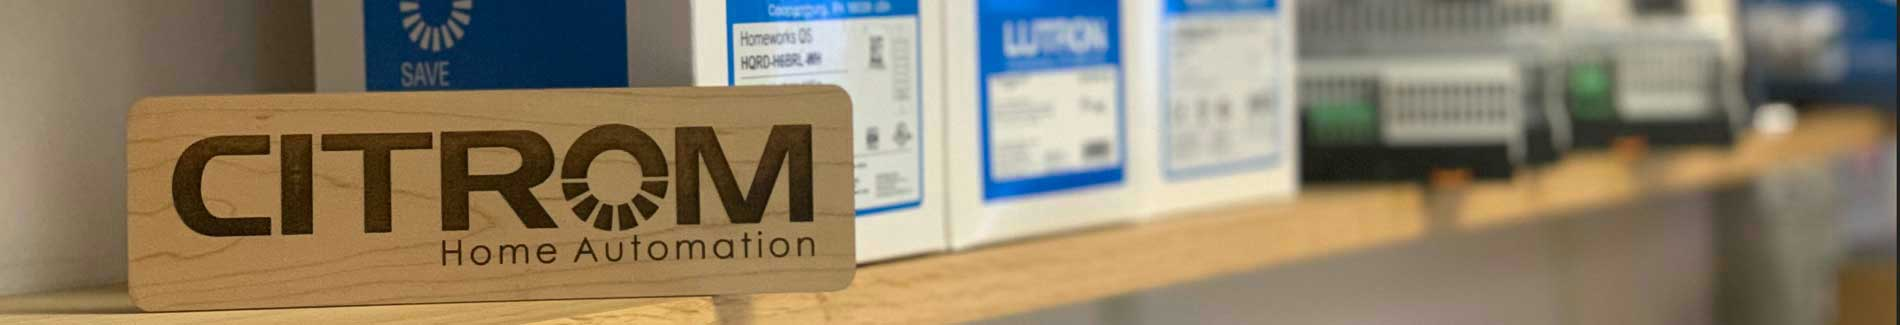 Citrom Home Automation About Us